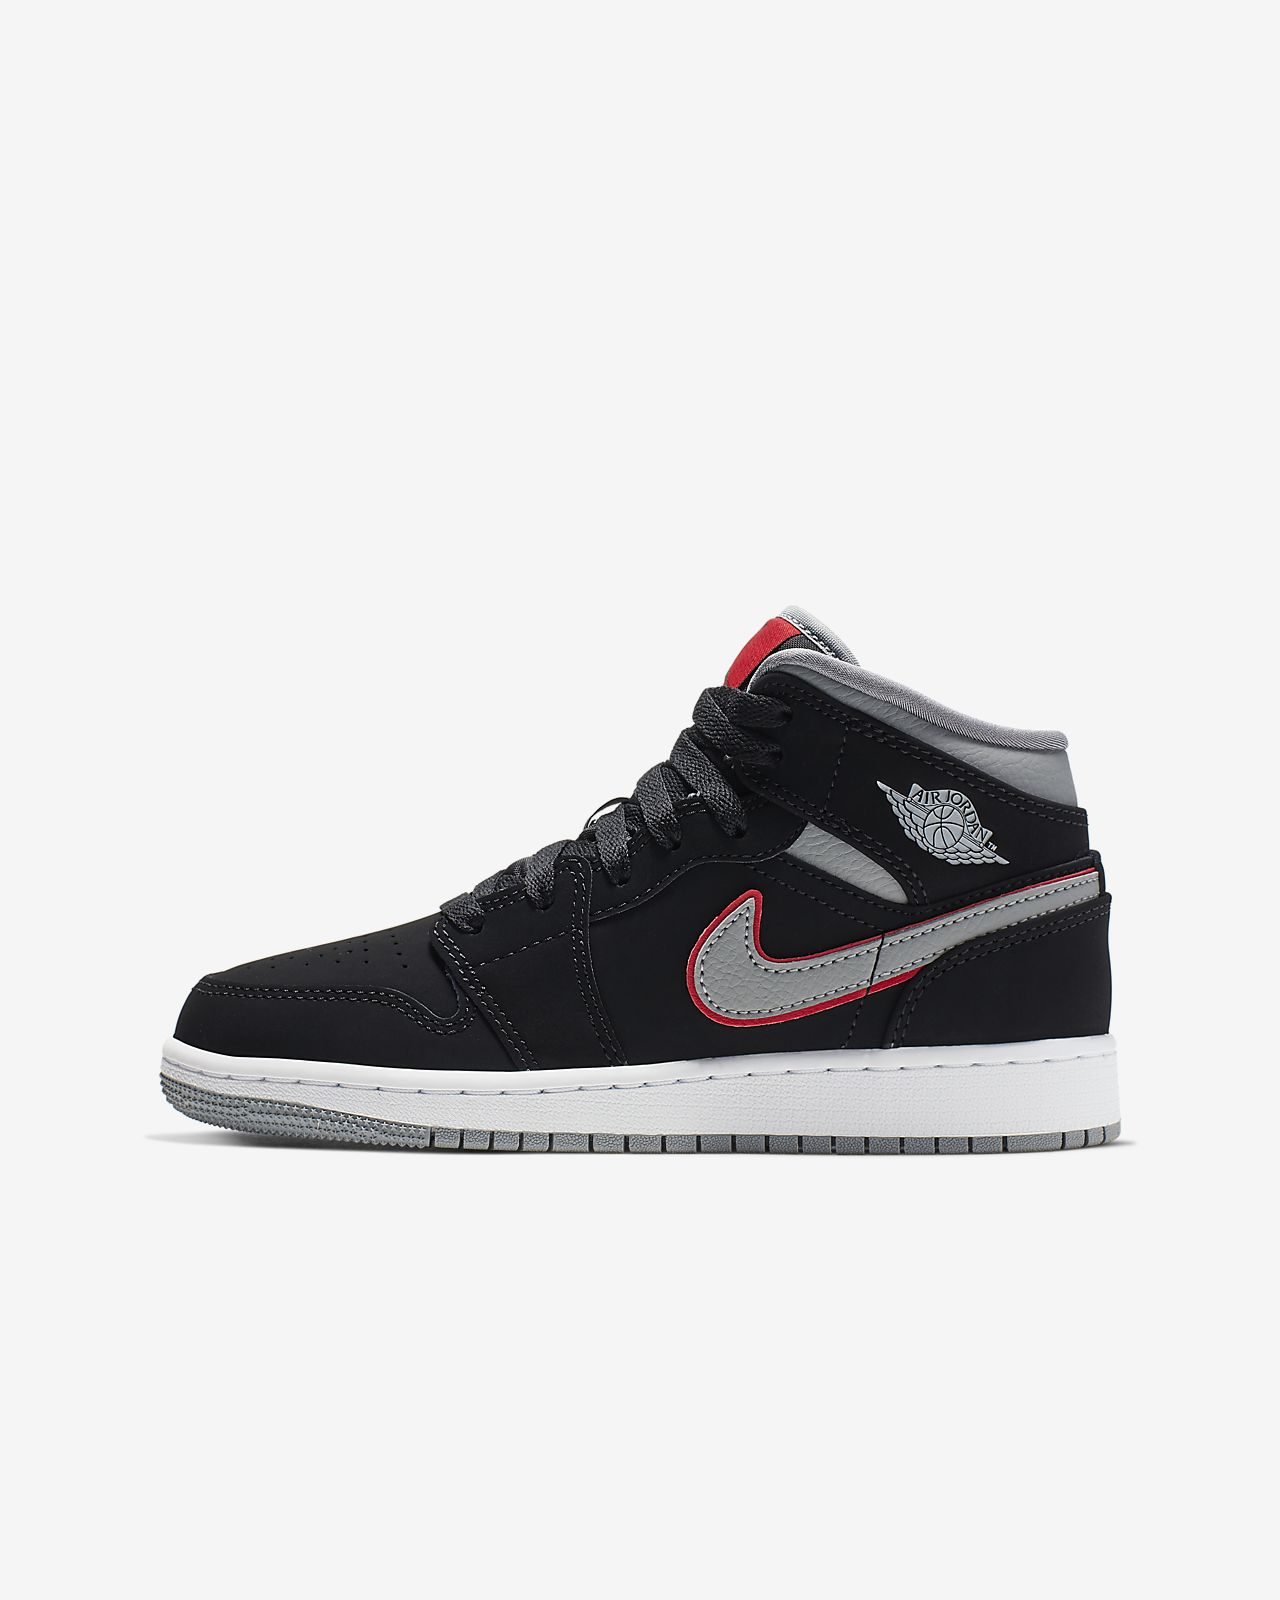 best website 7a83a 1c3d5 Sko Air Jordan 1 Mid för ungdom